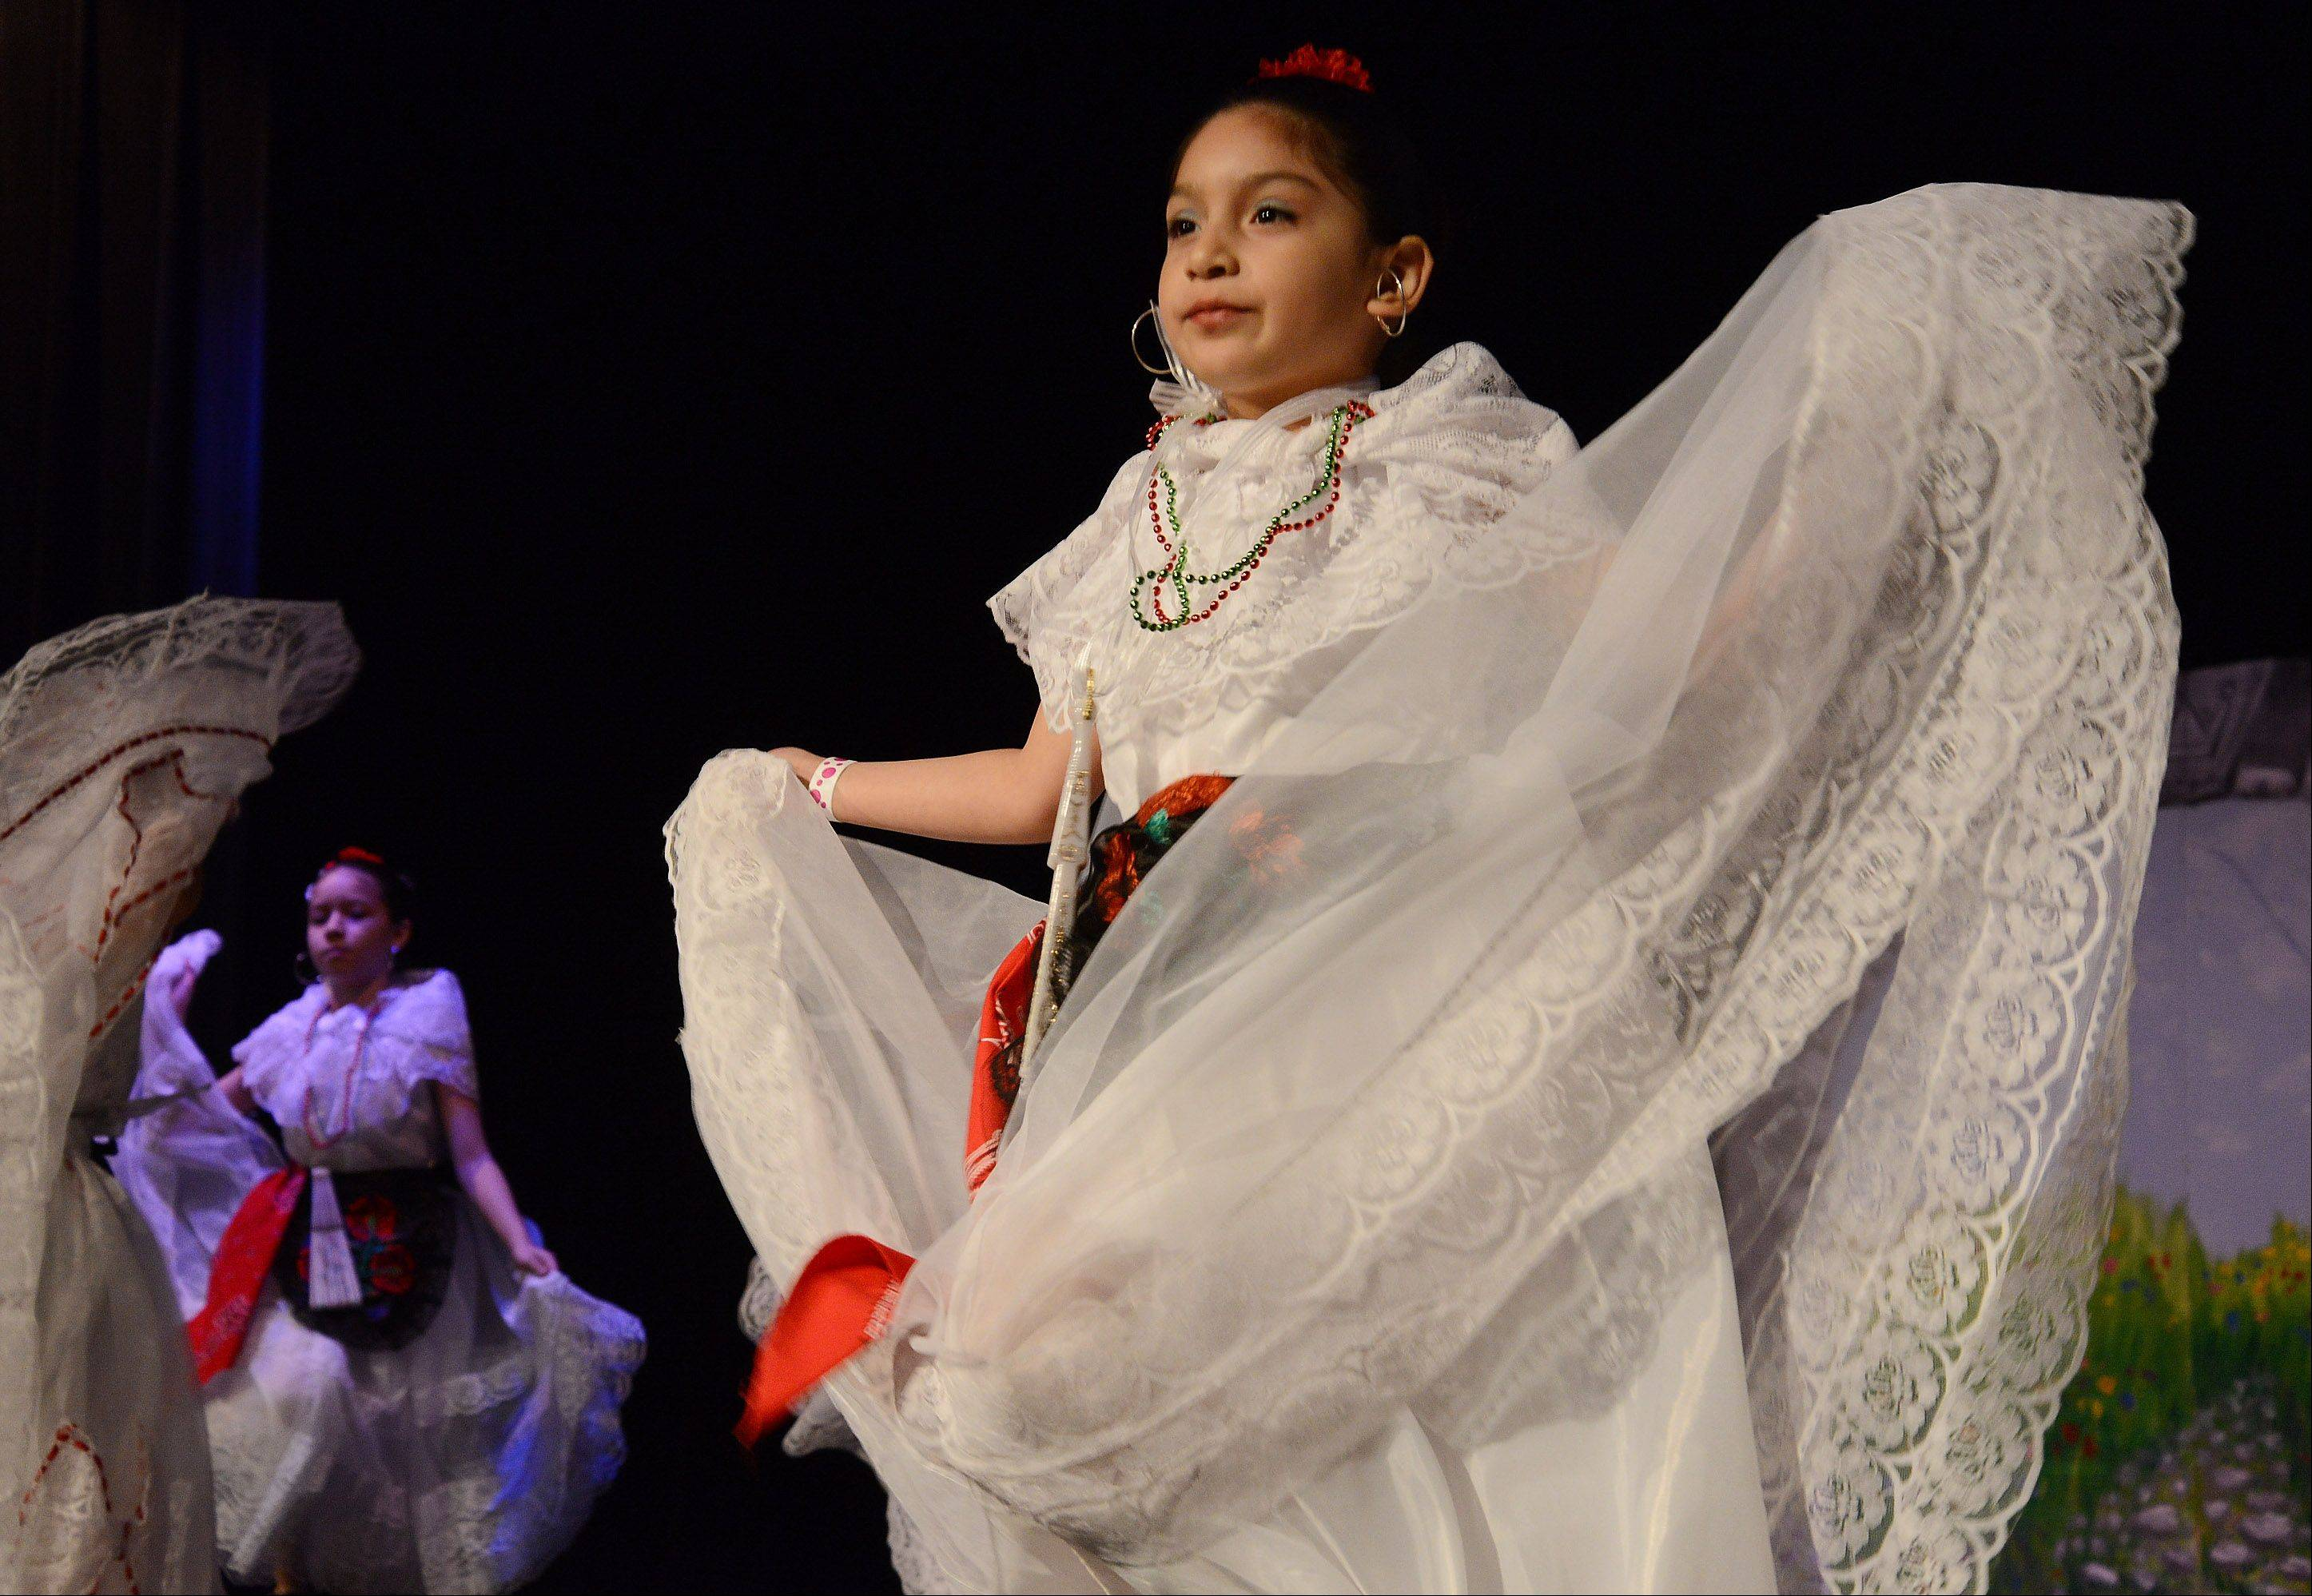 8-year-old Jackelyn Garcia dances in traditional Mexican garb during Grupo Folklorico Quetzal Mexican folk dance at the School District 54 and the Schaumburg Park District multicultural fair.